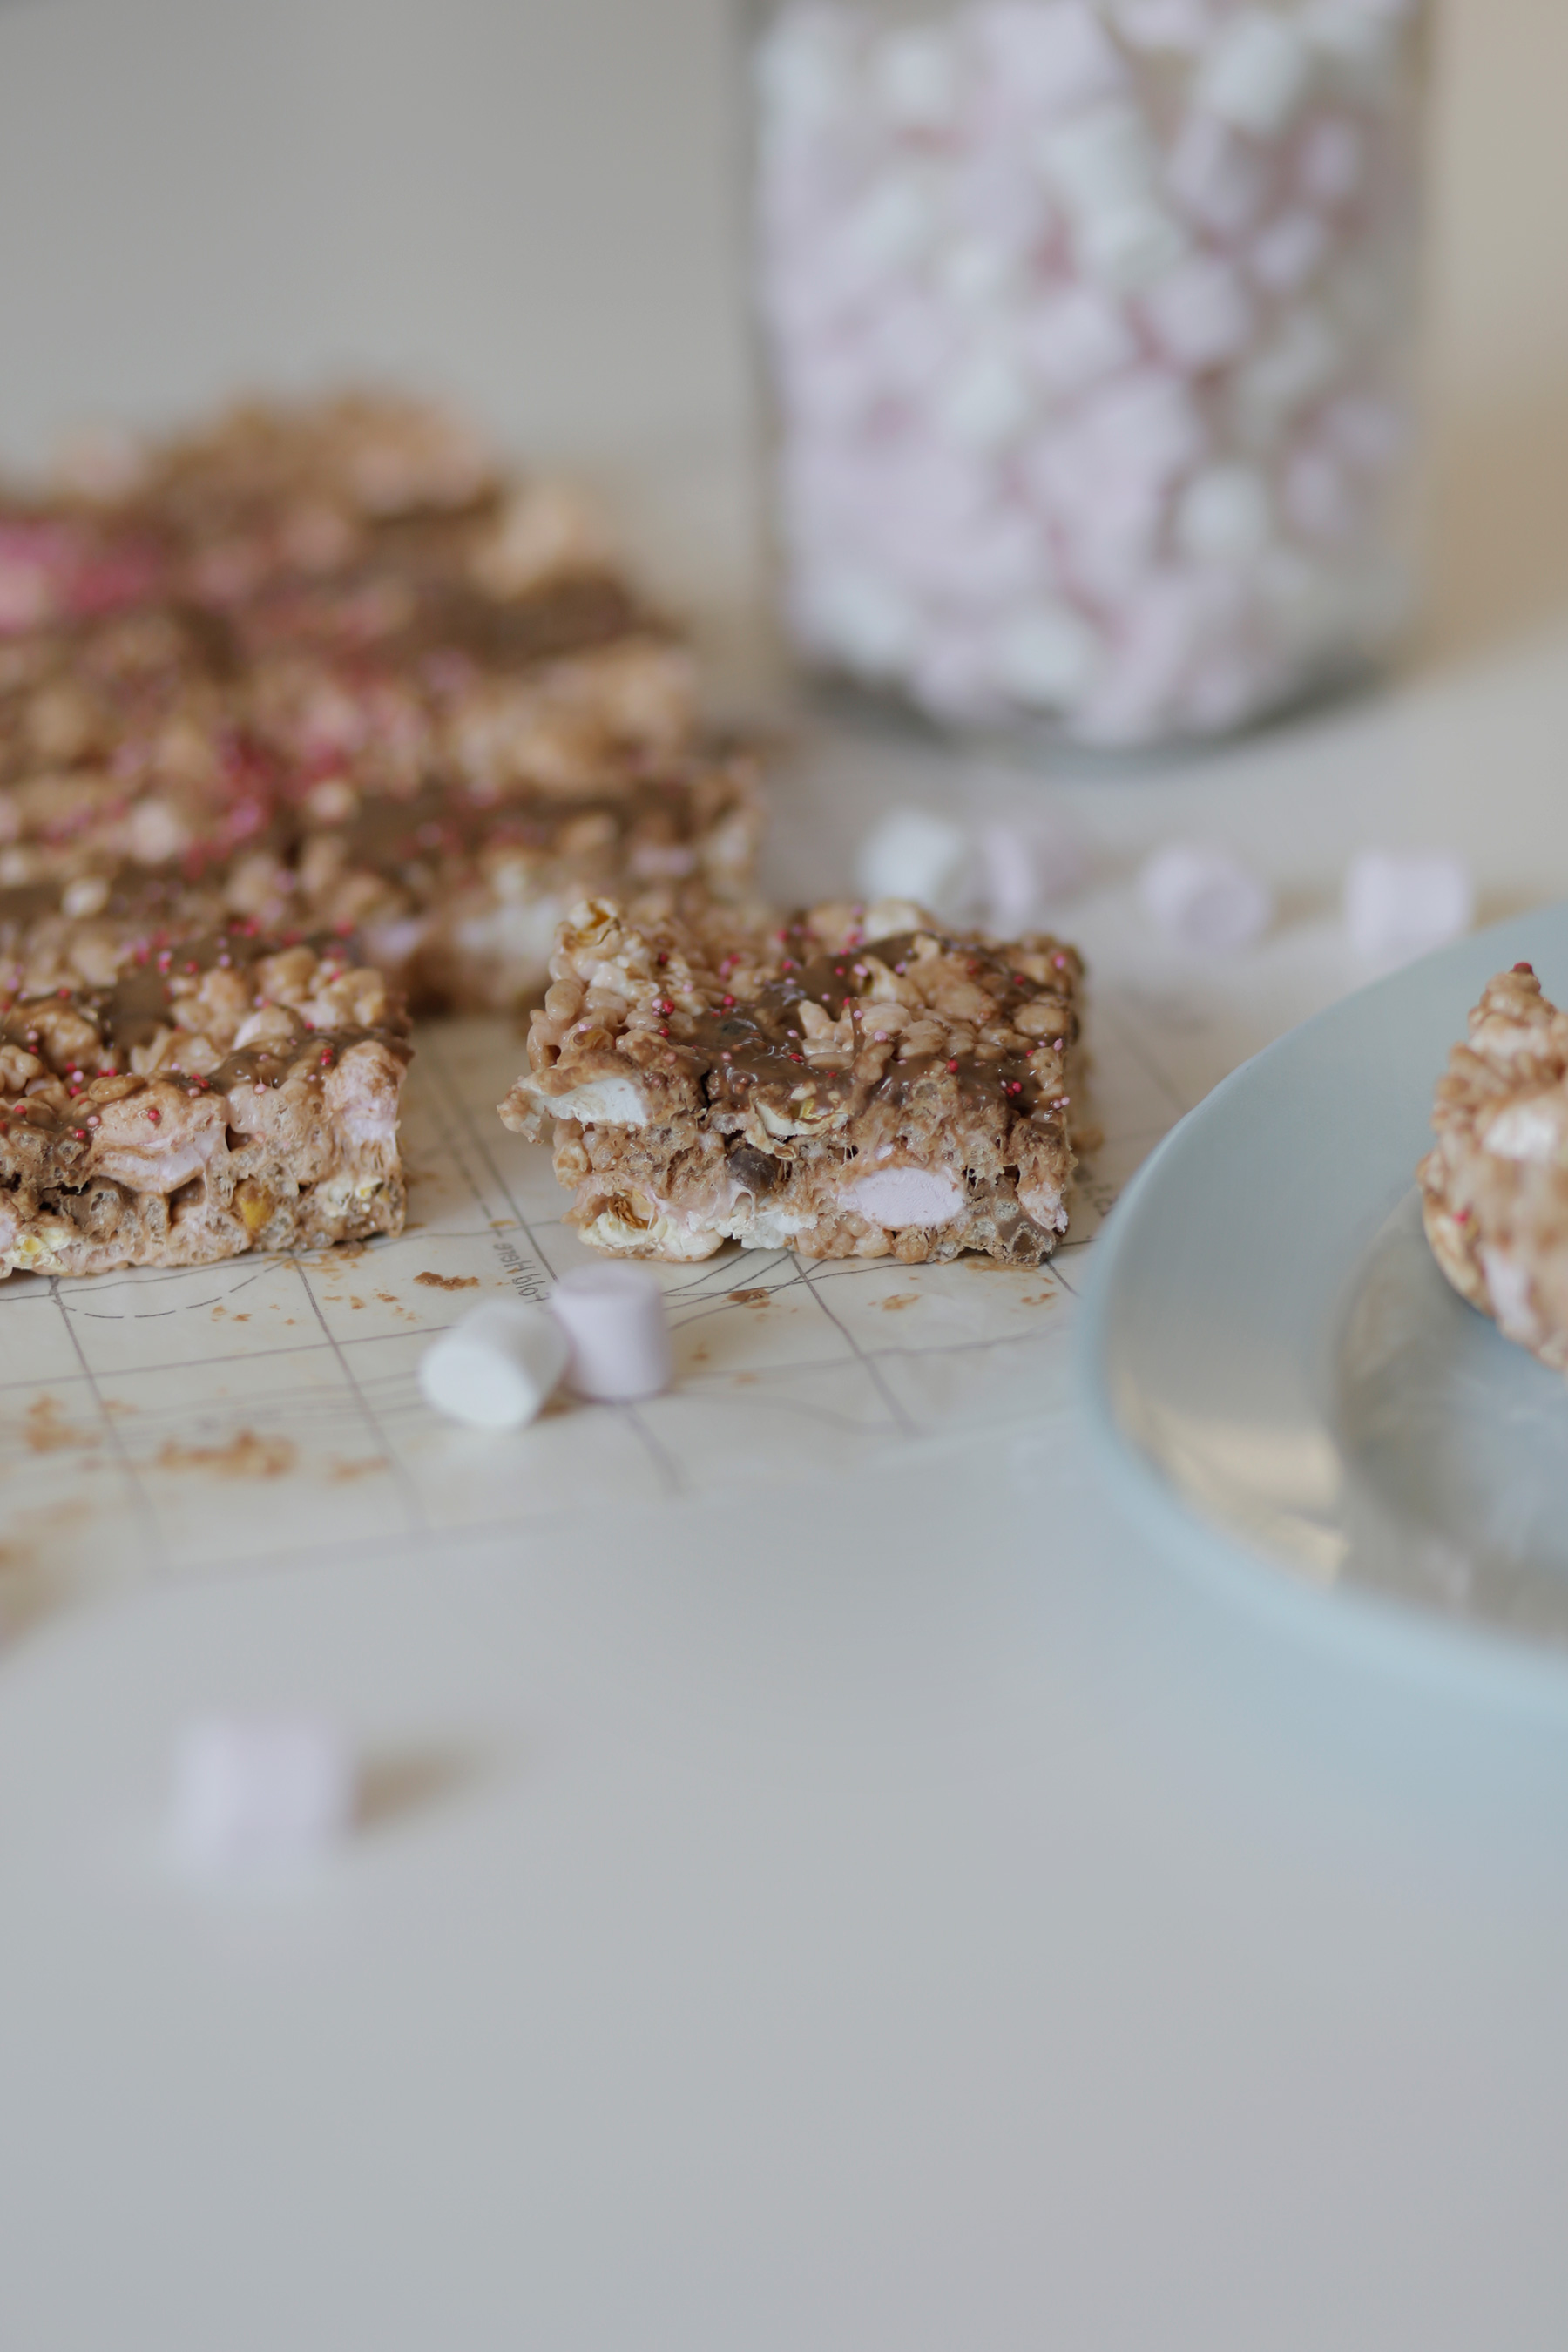 RICE-kRISPIE-TREATS-2